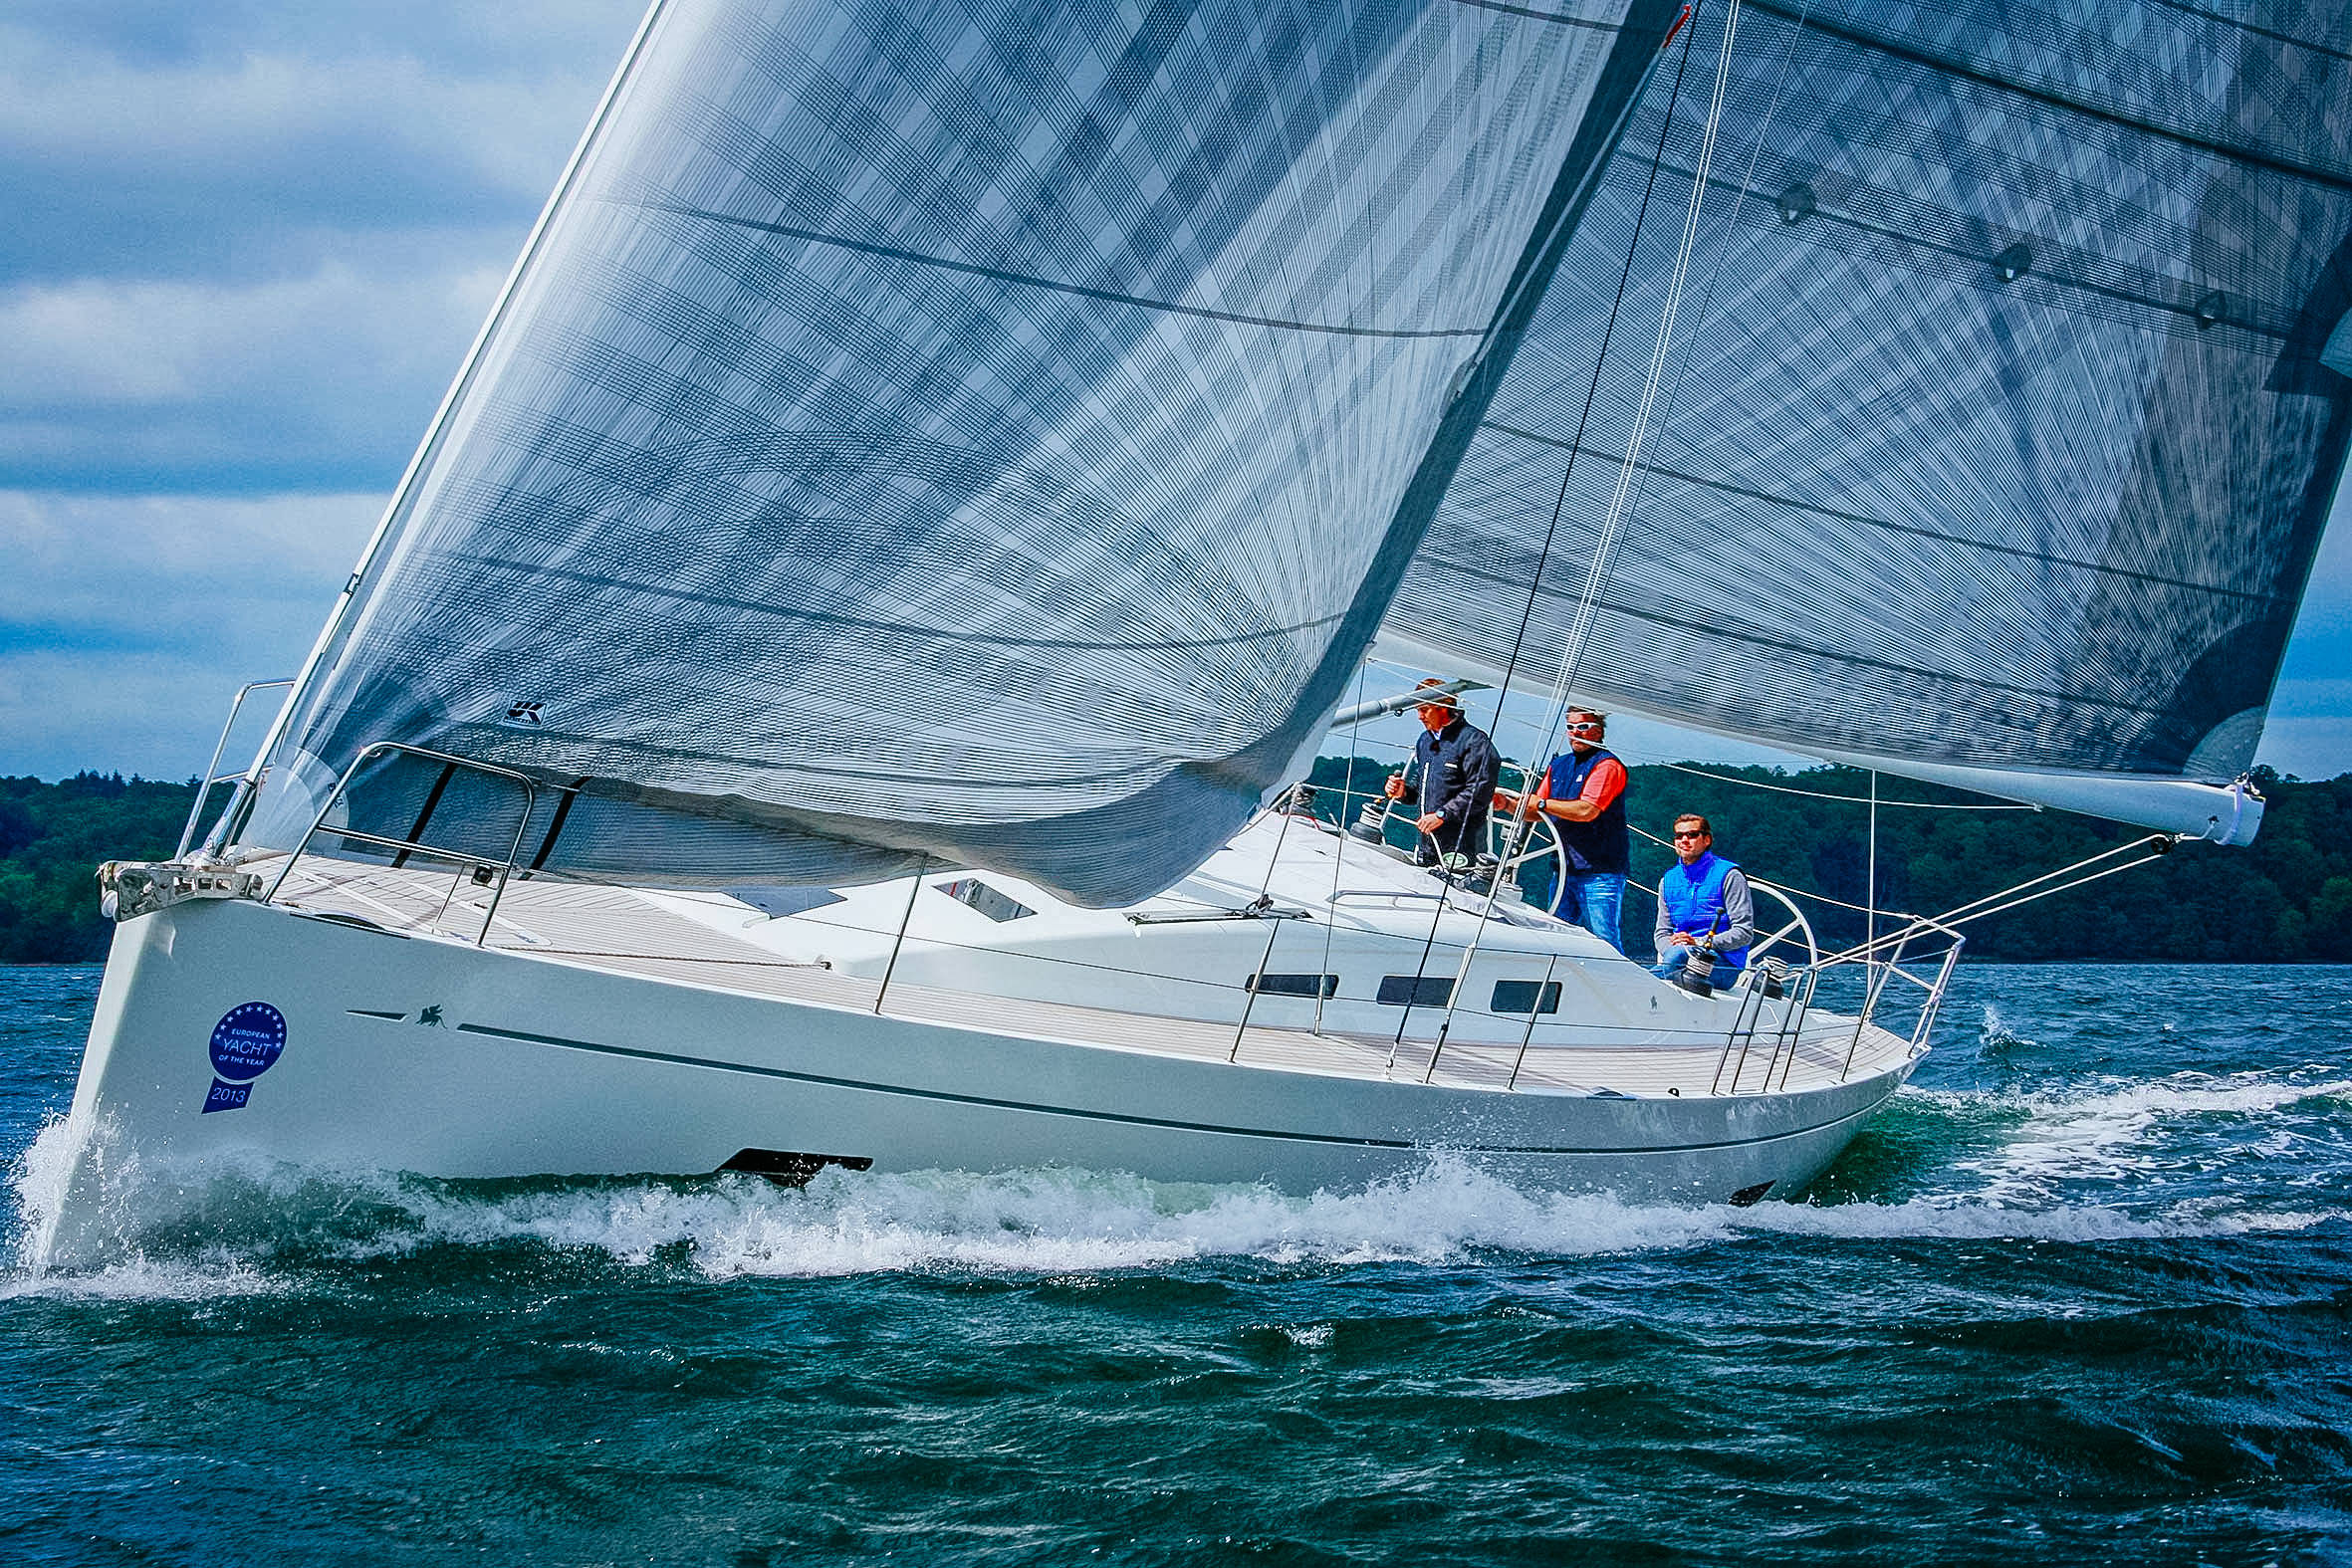 An Italia 13.98 with X-Drive taffeta carbon cruising sails. Click to enlarge.